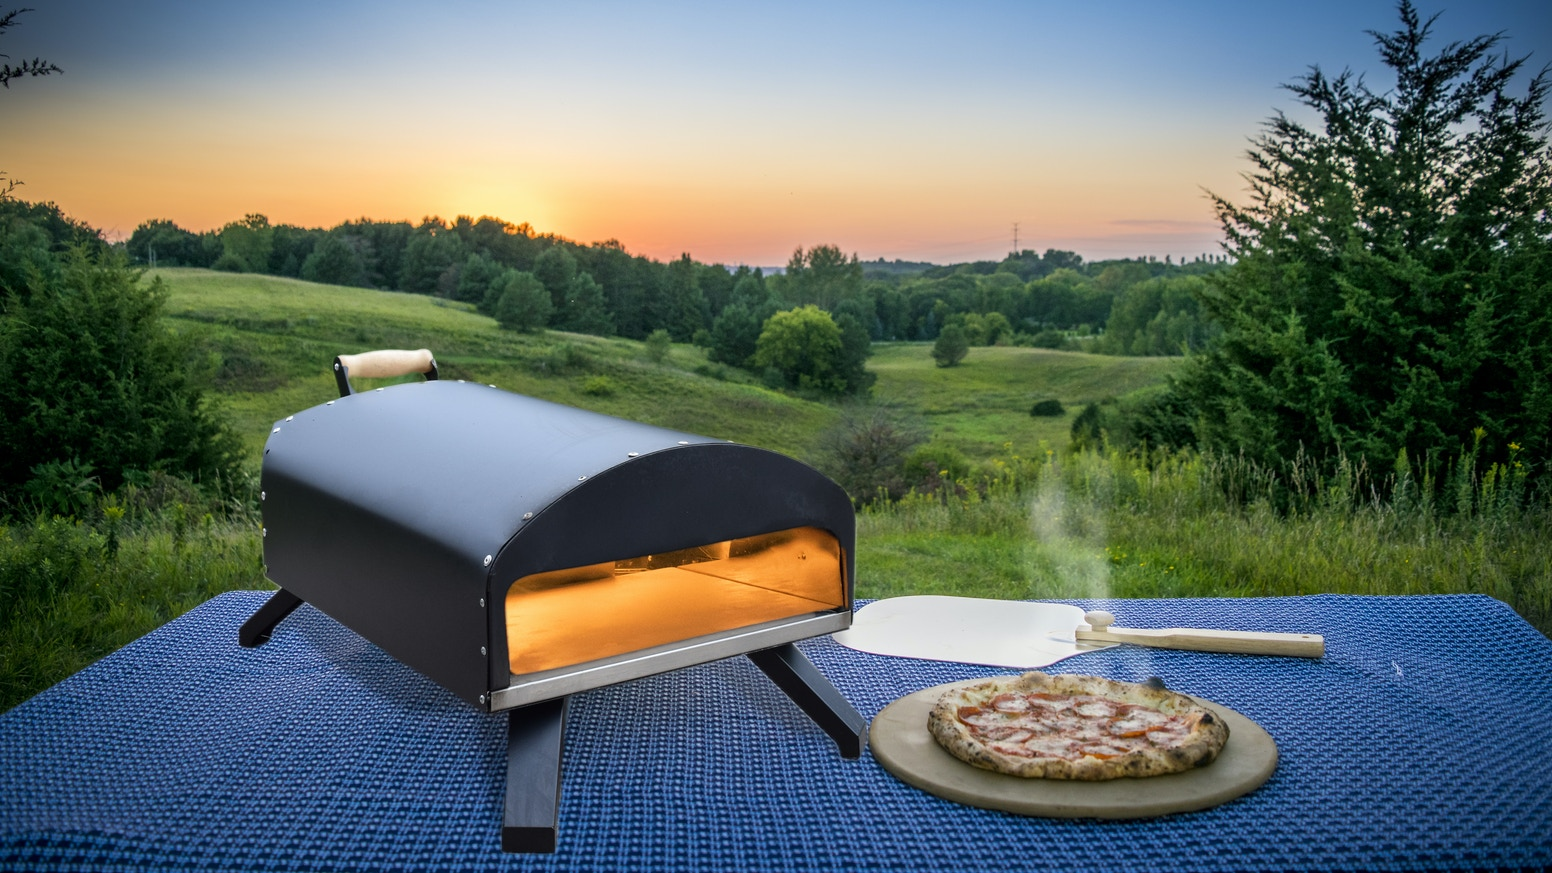 Napoli Multi Fueled Outdoor Pizza Oven By Napoli Kickstarter